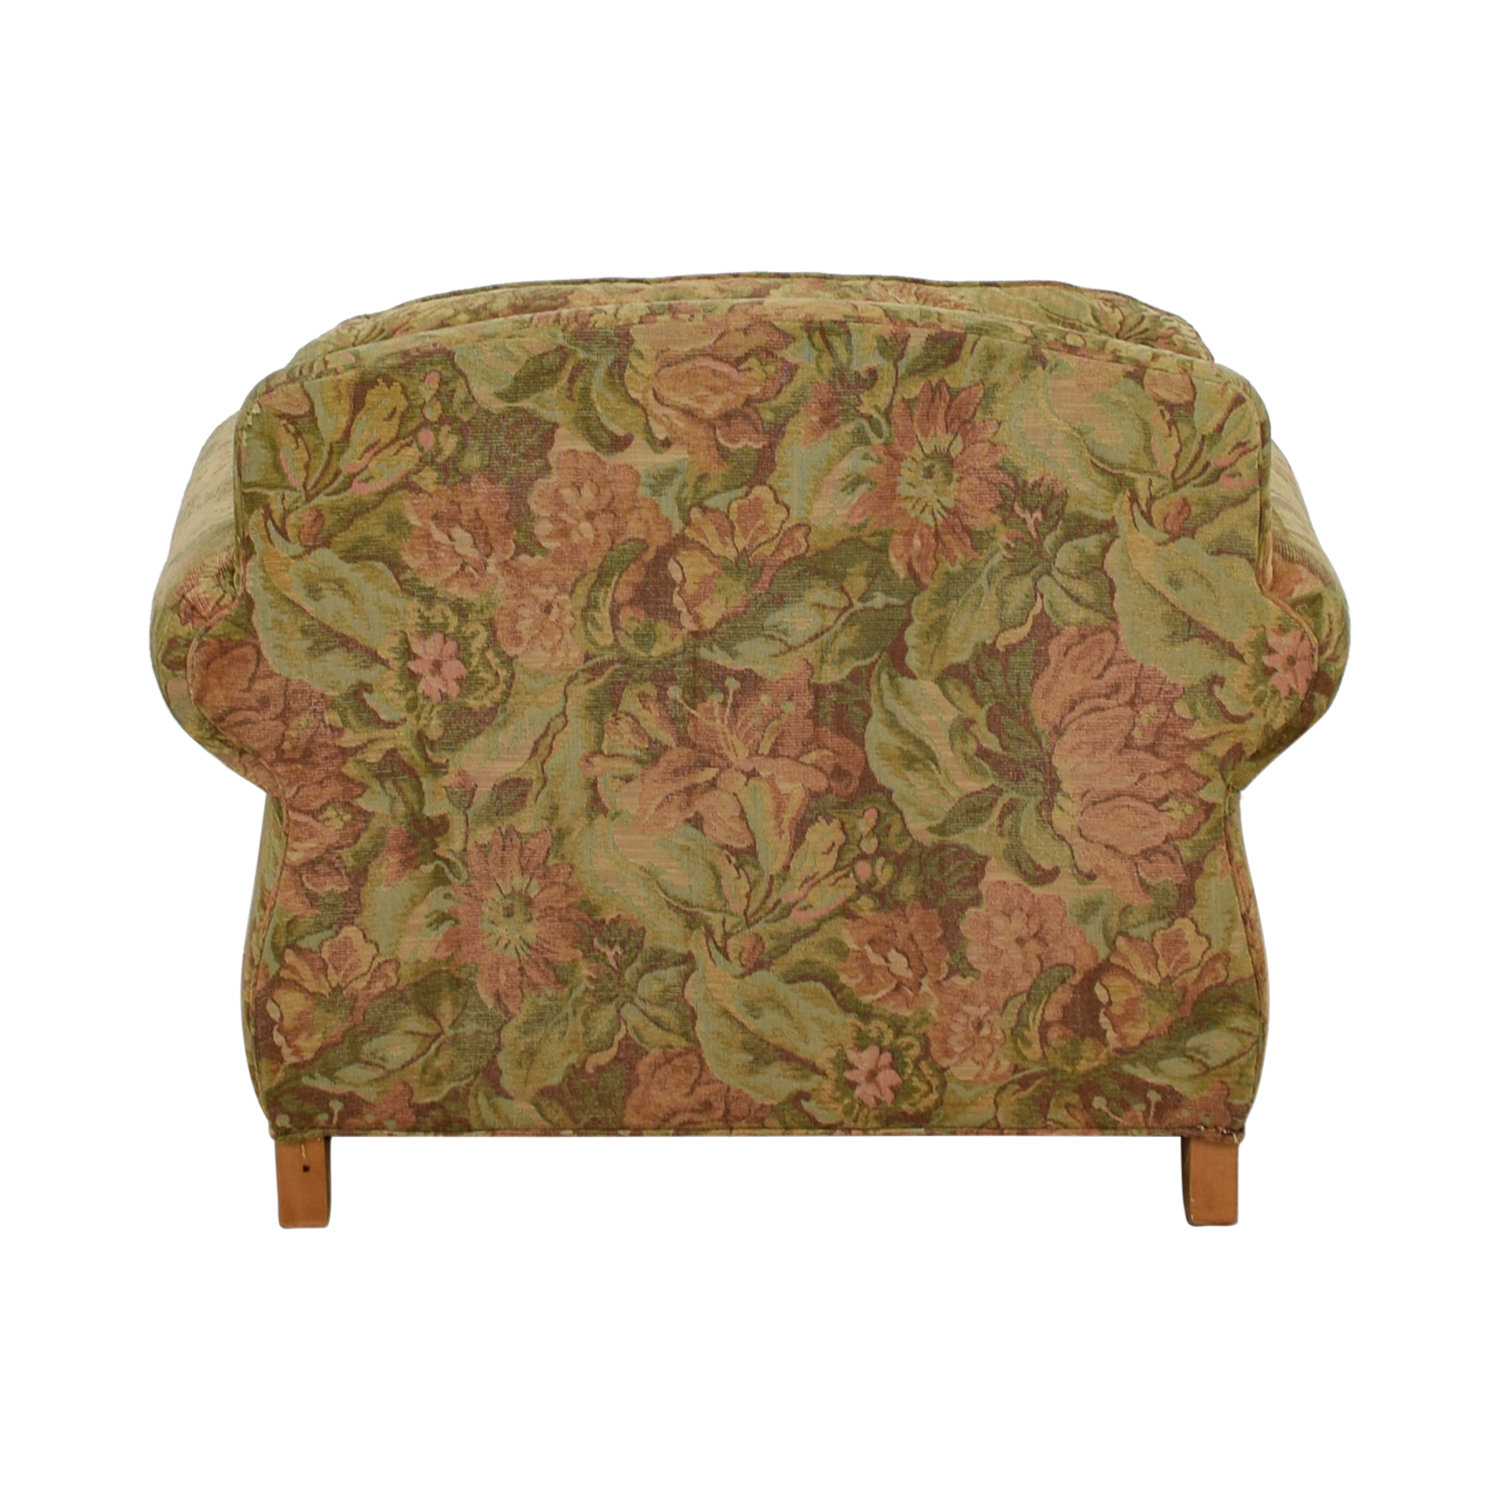 Ethan Allen Ethan Allen Flower Fabric Lounge Chair used